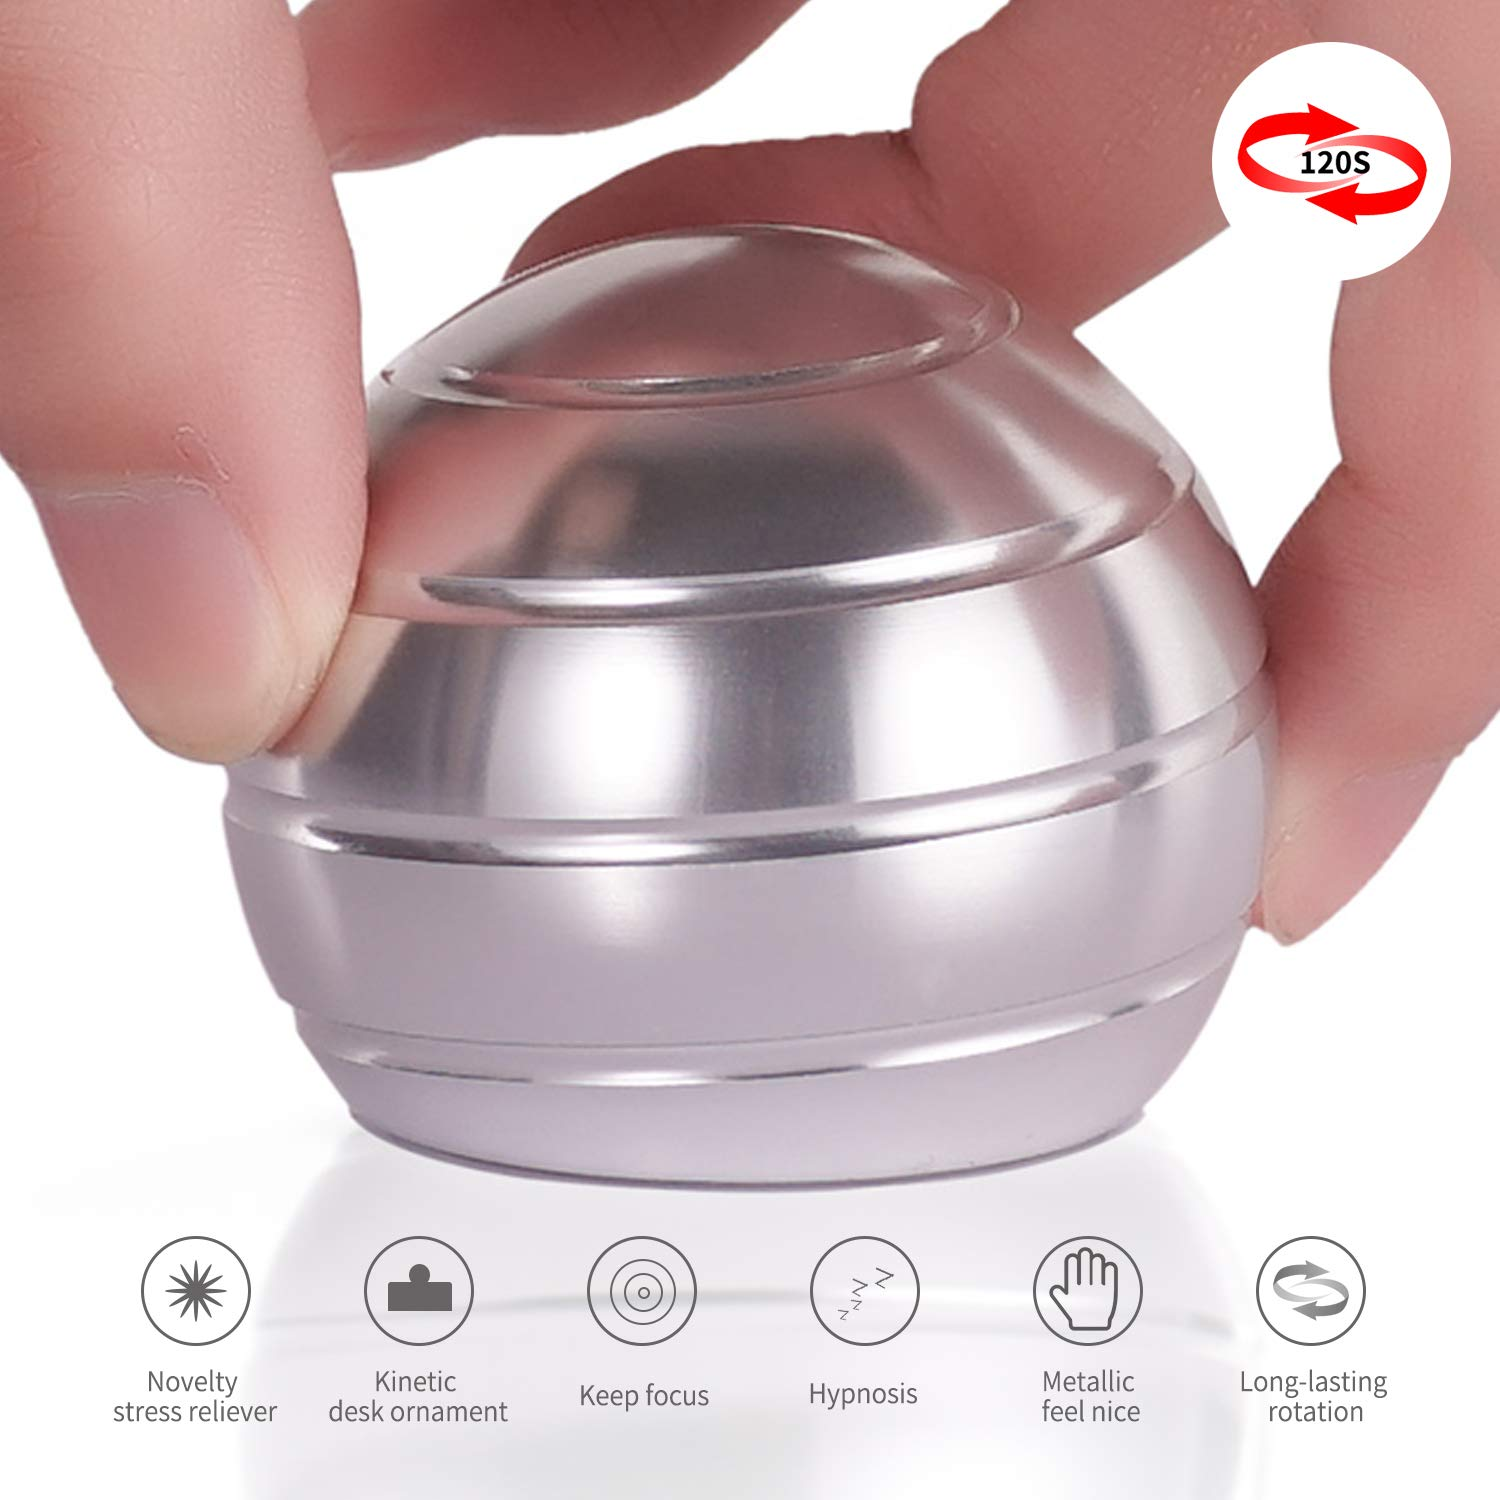 DESDK Office Stress Relief Gadgets Metal Kinetic Spinning Desk Toy New Version Fidget Toy Ball for Adults & Kids Anti Anxiety ADHD Autism Stress Reliever Inspire Creativity (Silver)